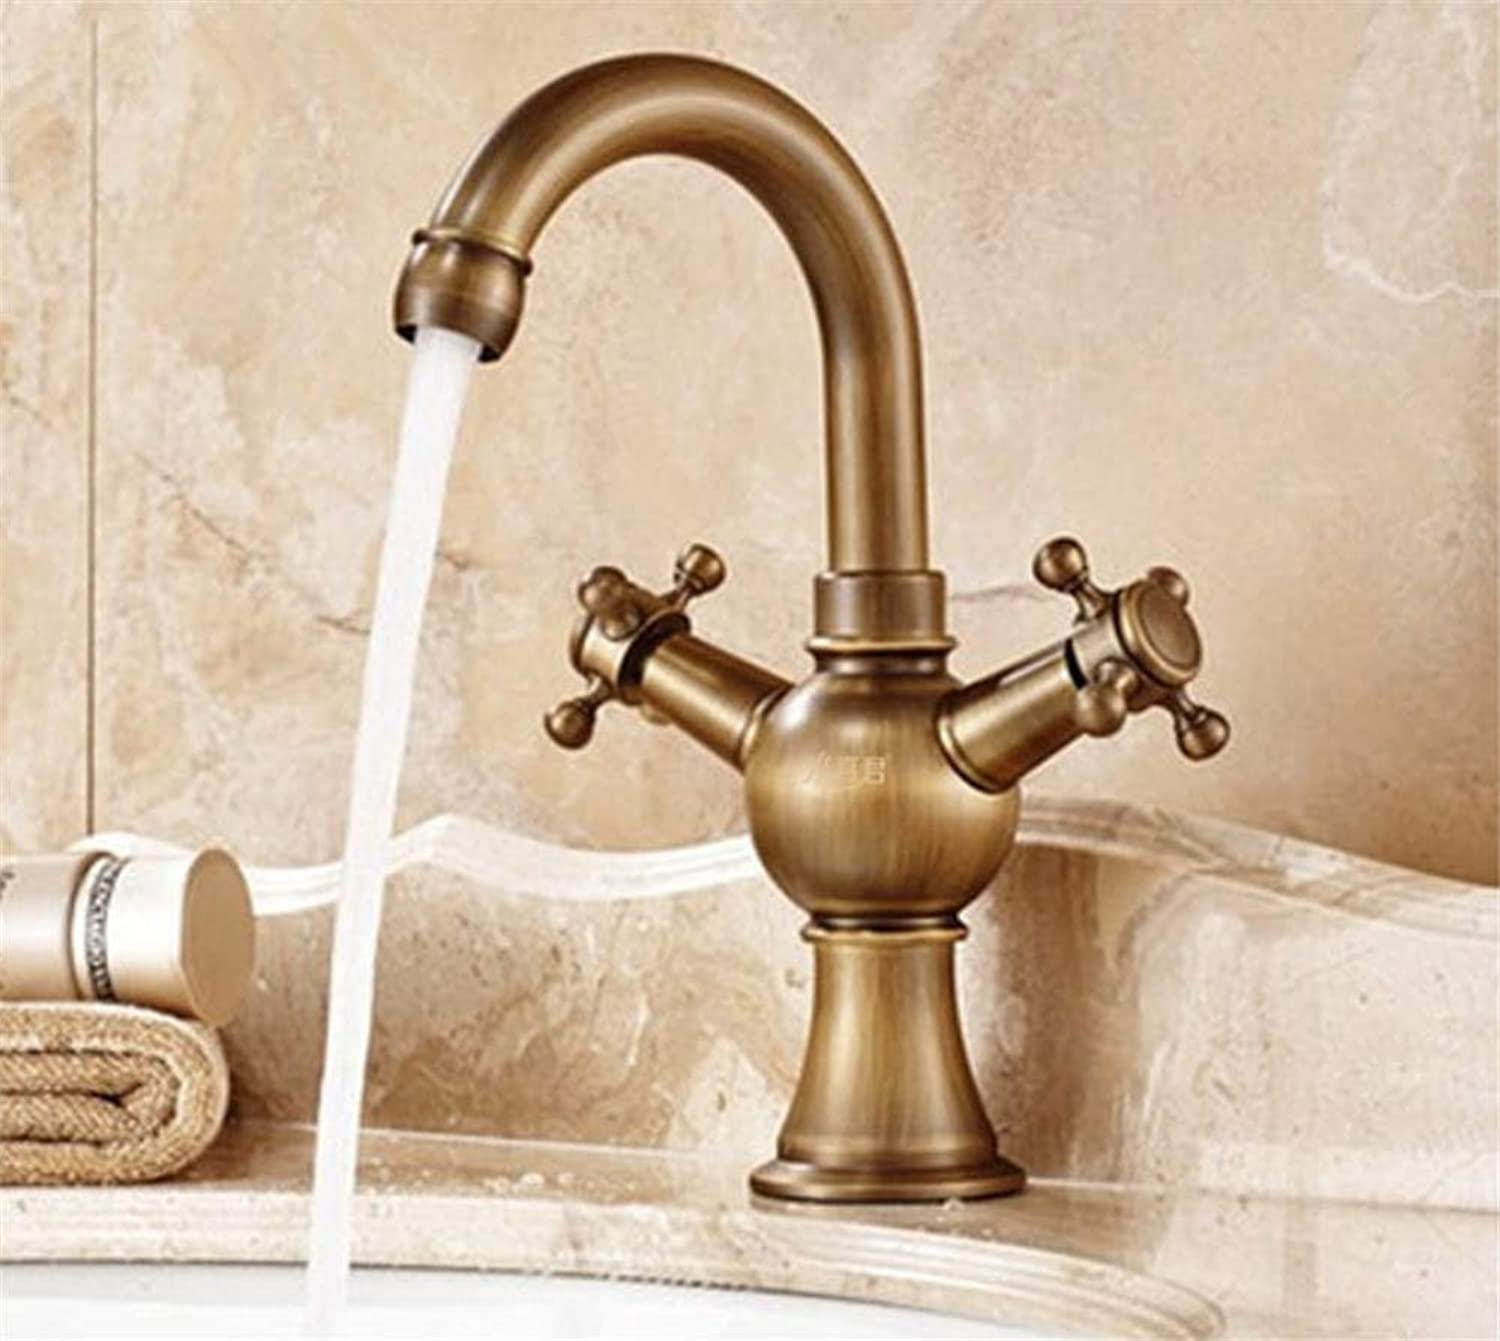 JONTON Faucet faucet faucet above counter basin copper antique hot and cold kitchen washing dishes washing dishes washing dishes wash mixed